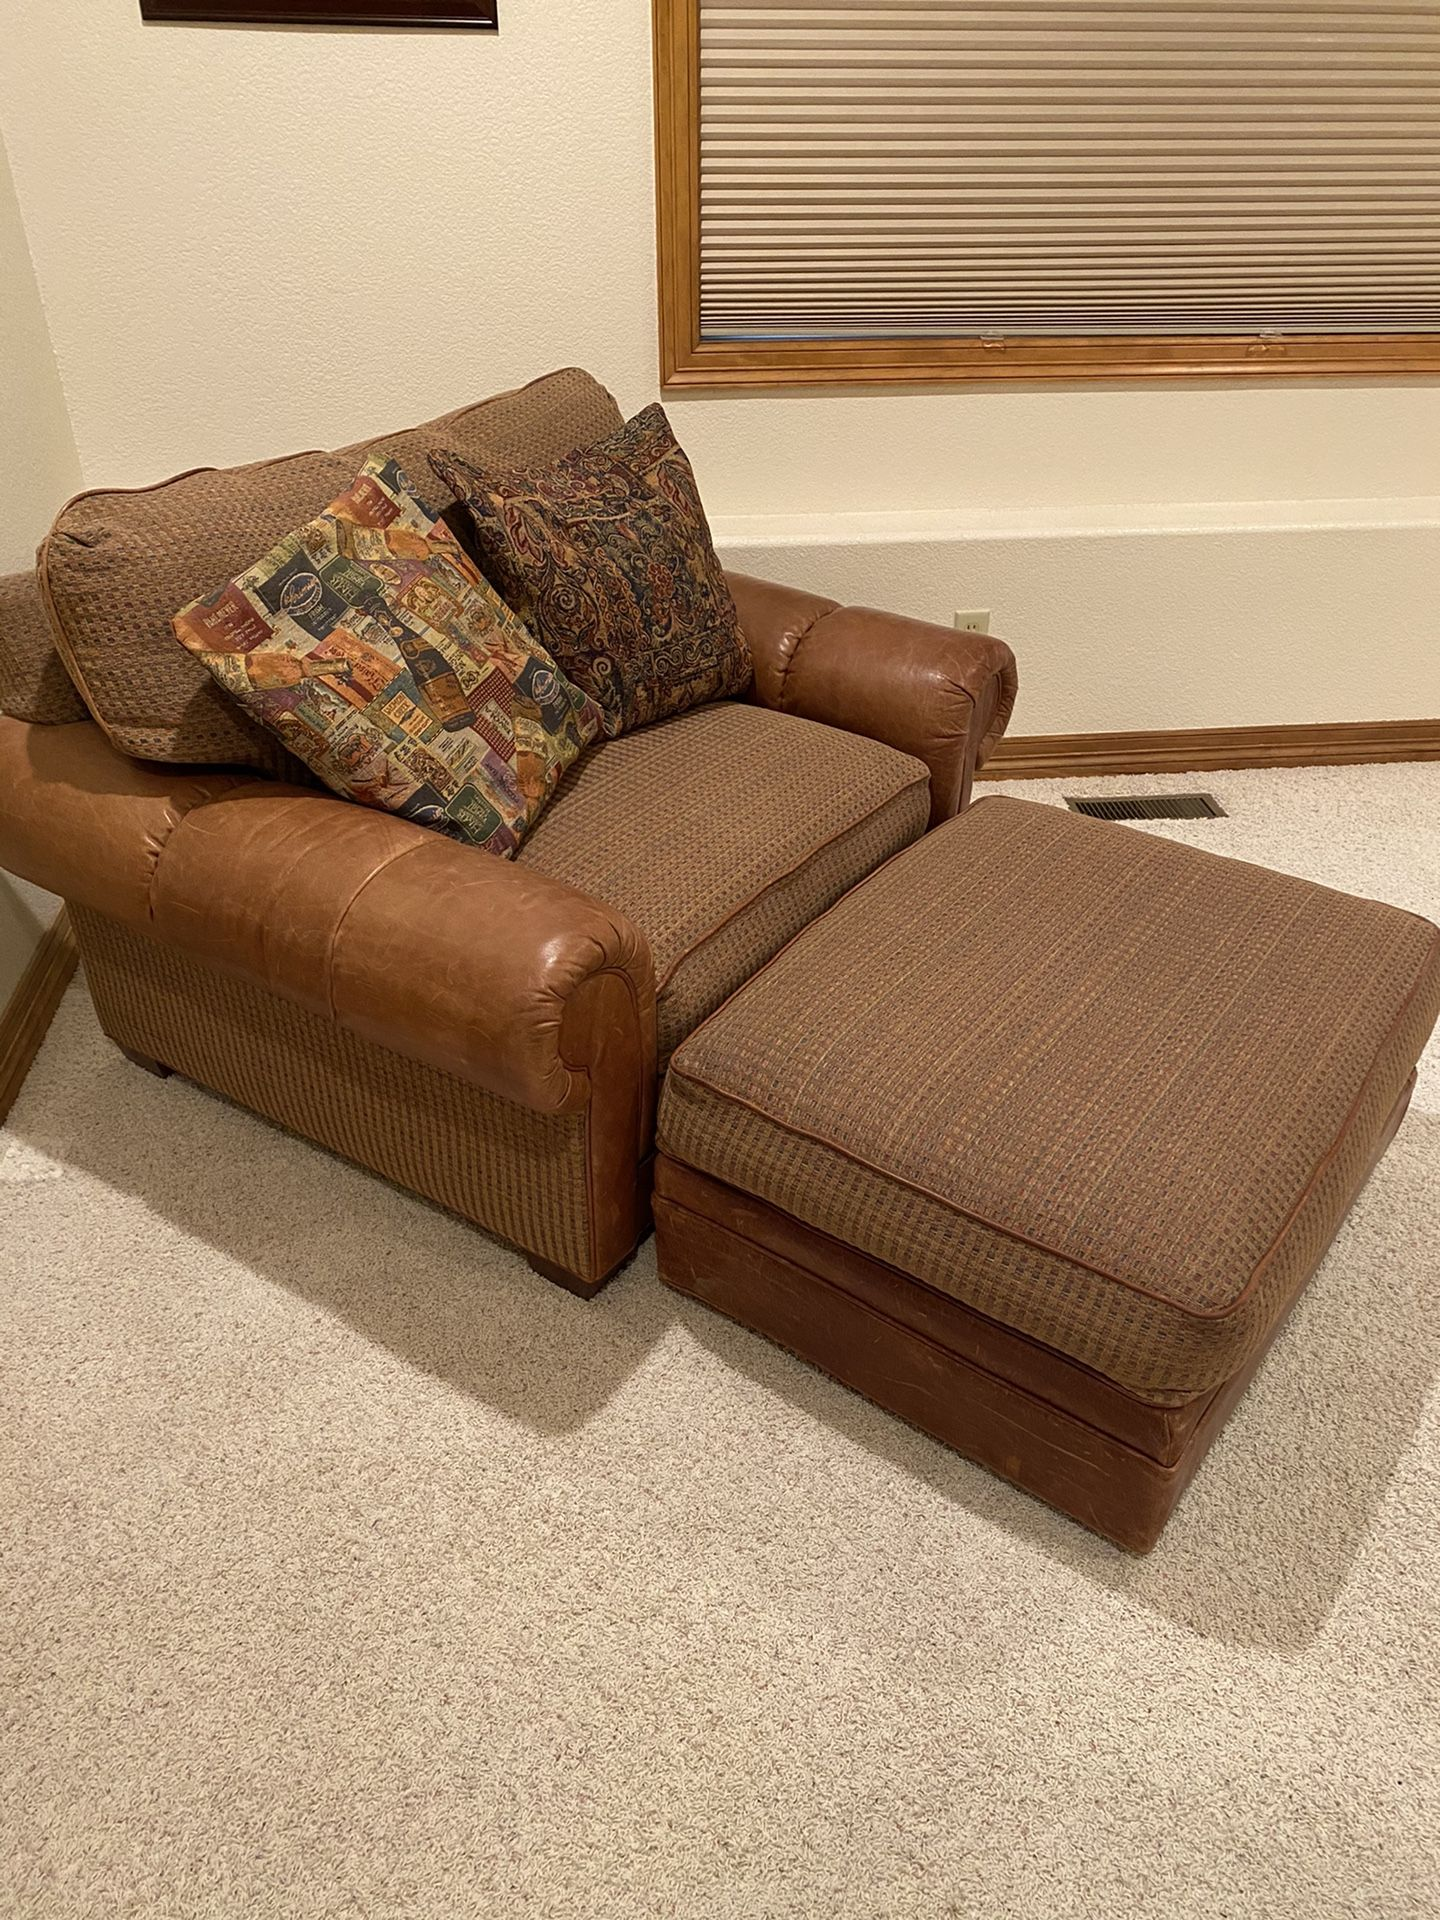 Oversized Leather Chair with Ottoman